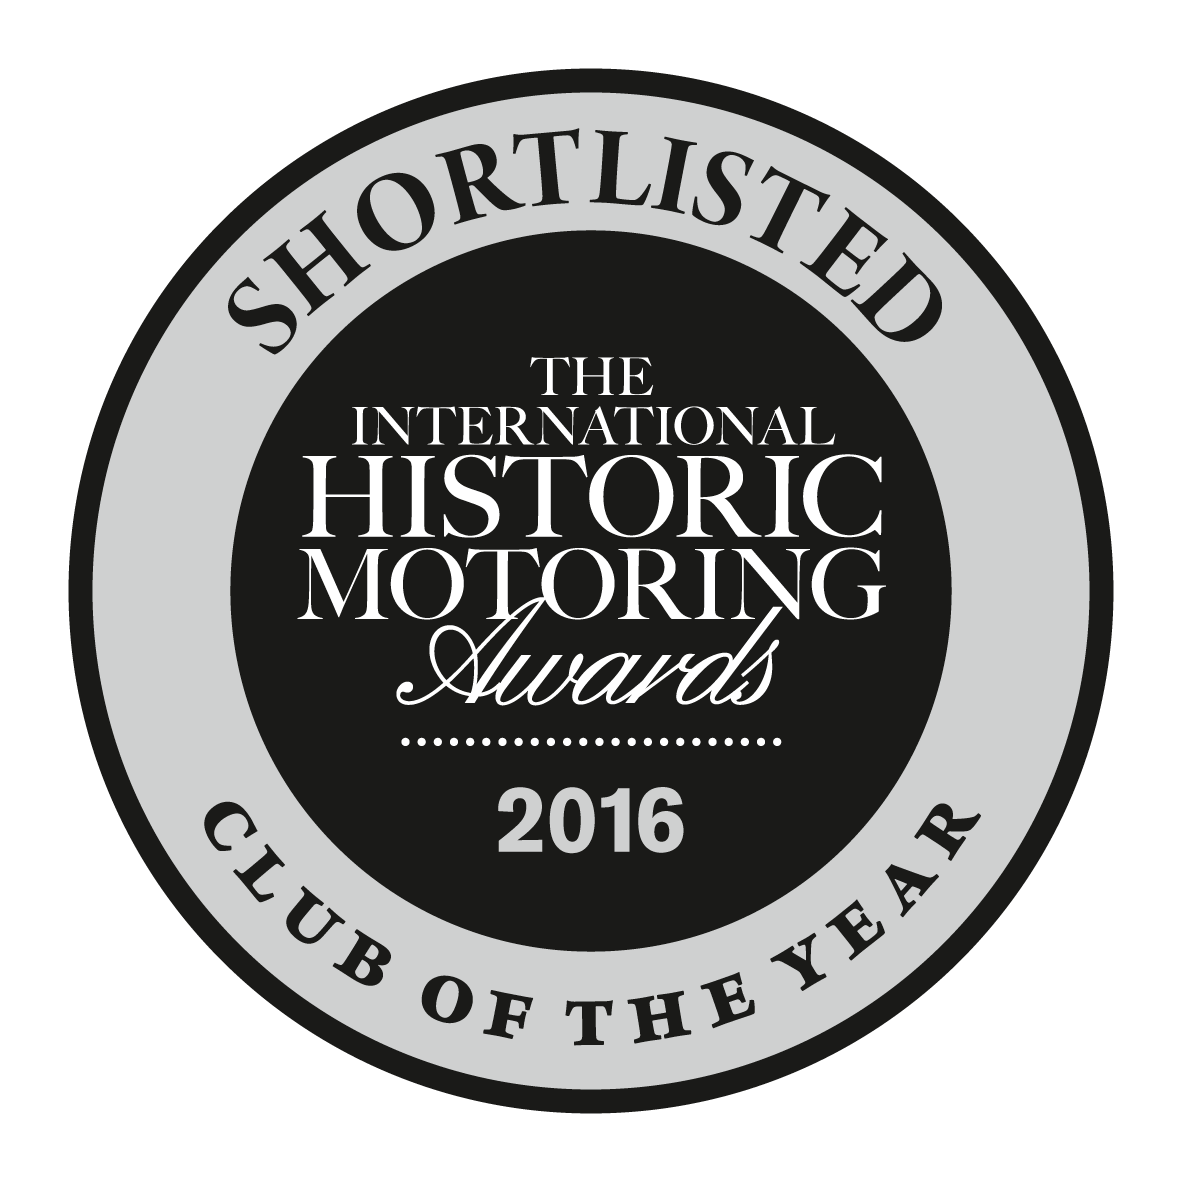 TR Register Shortlisted in the 2016 International Historic Motoring Awards